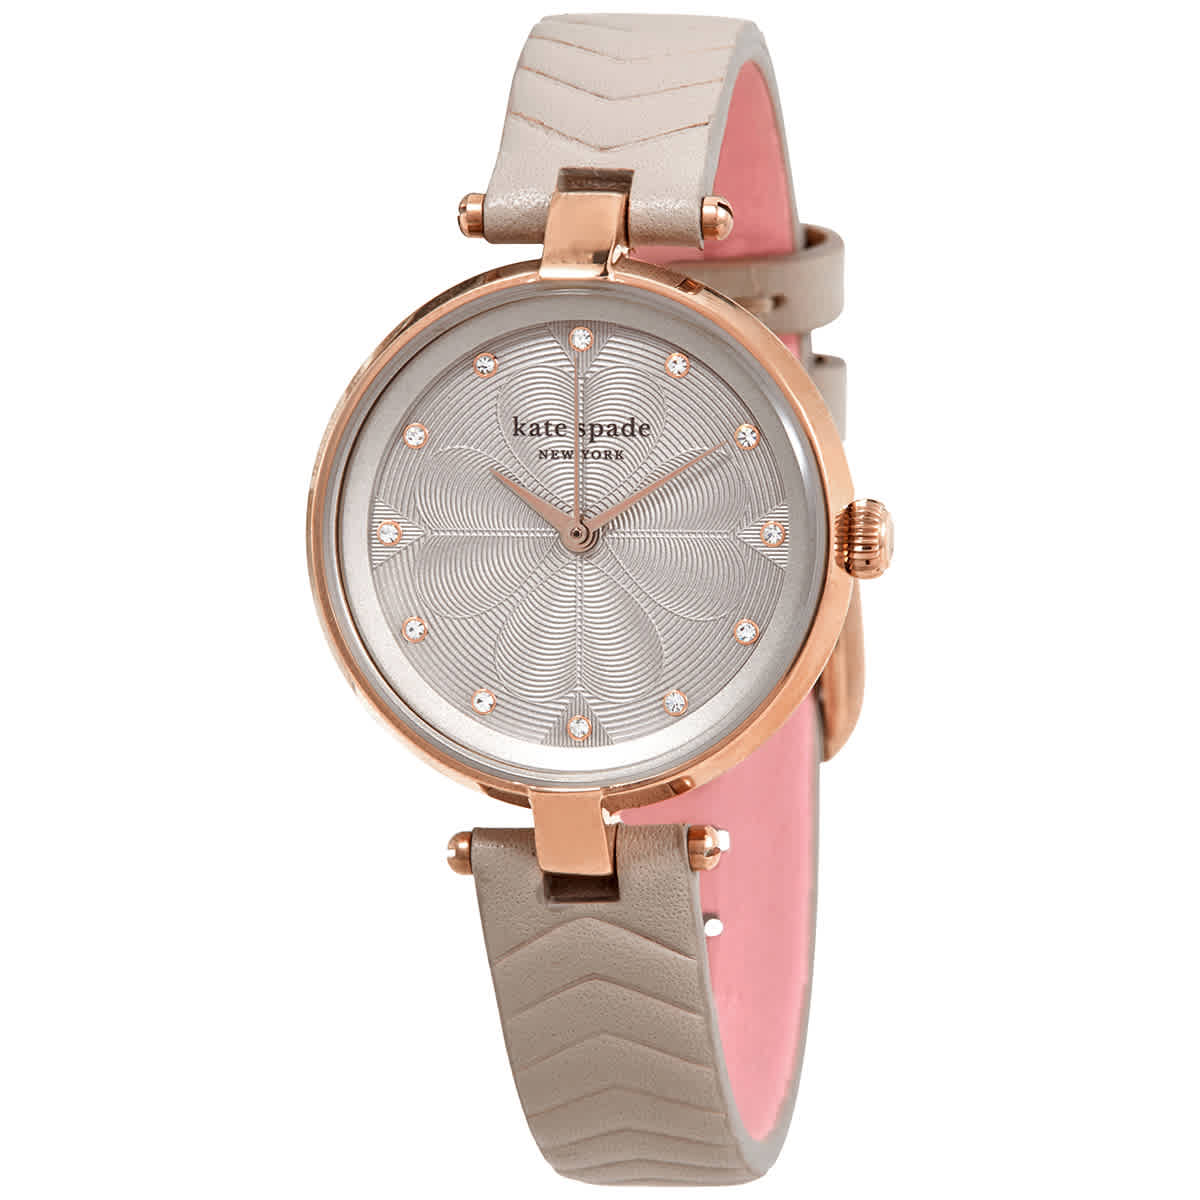 Kate Spade Annadale Quartz Crystal Grey Dial Ladies Watch Ksw1575 In Gold Tone,grey,pink,rose Gold Tone